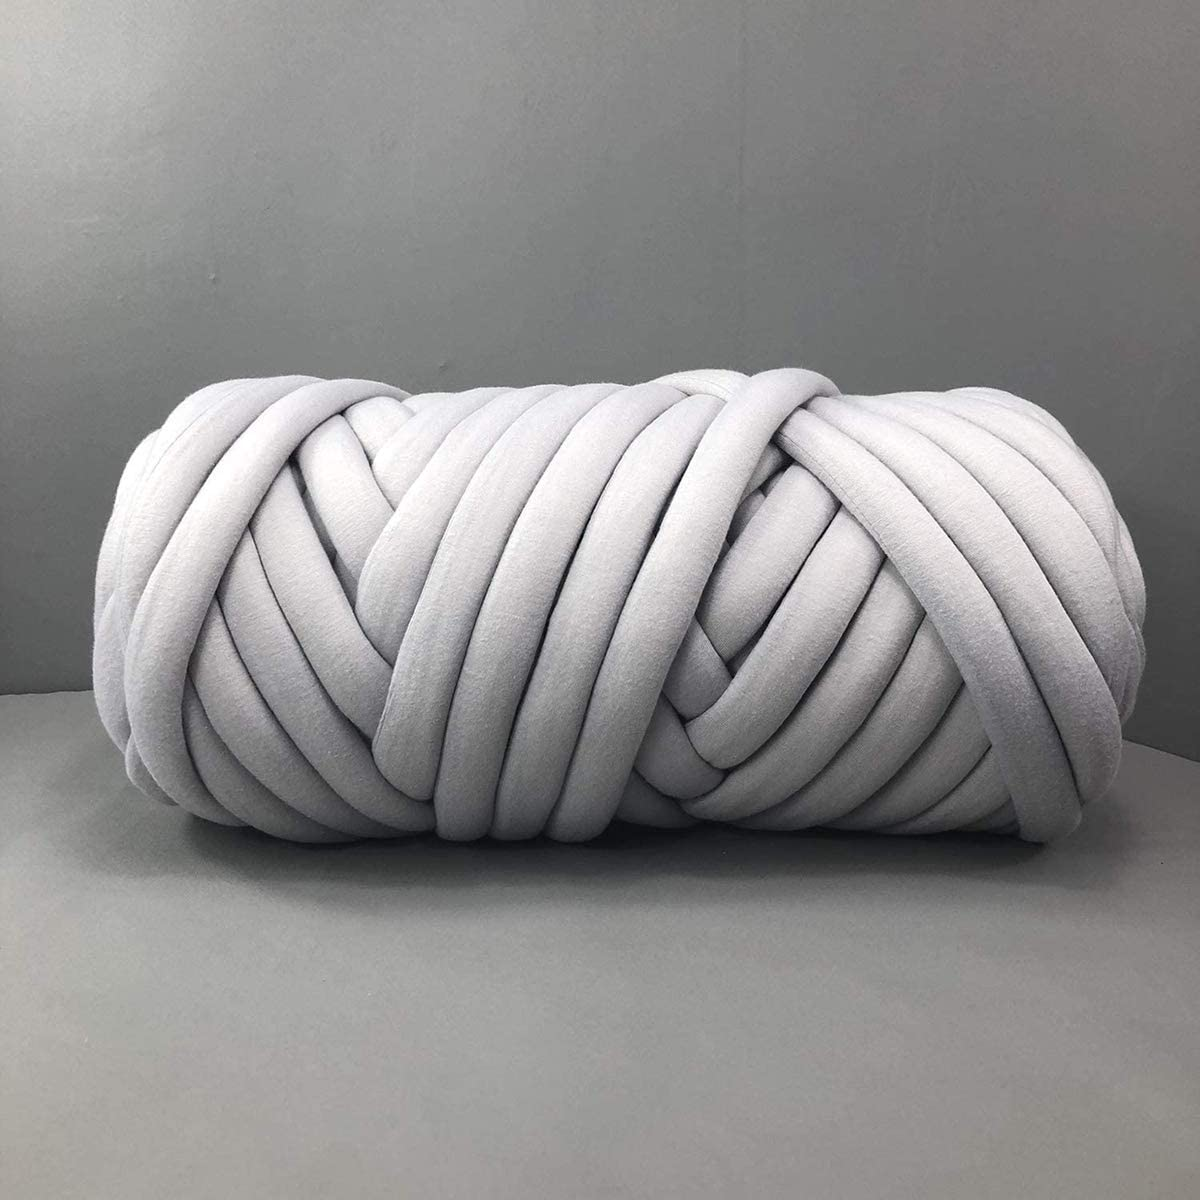 Chunky Cotton Tube Yarn Thick Vegan Yarn Merino Wool Alternative DIY Bulky Knitting Blanket Hand Knitting Spin Yarn Machine Washable Gray 4.4 LB